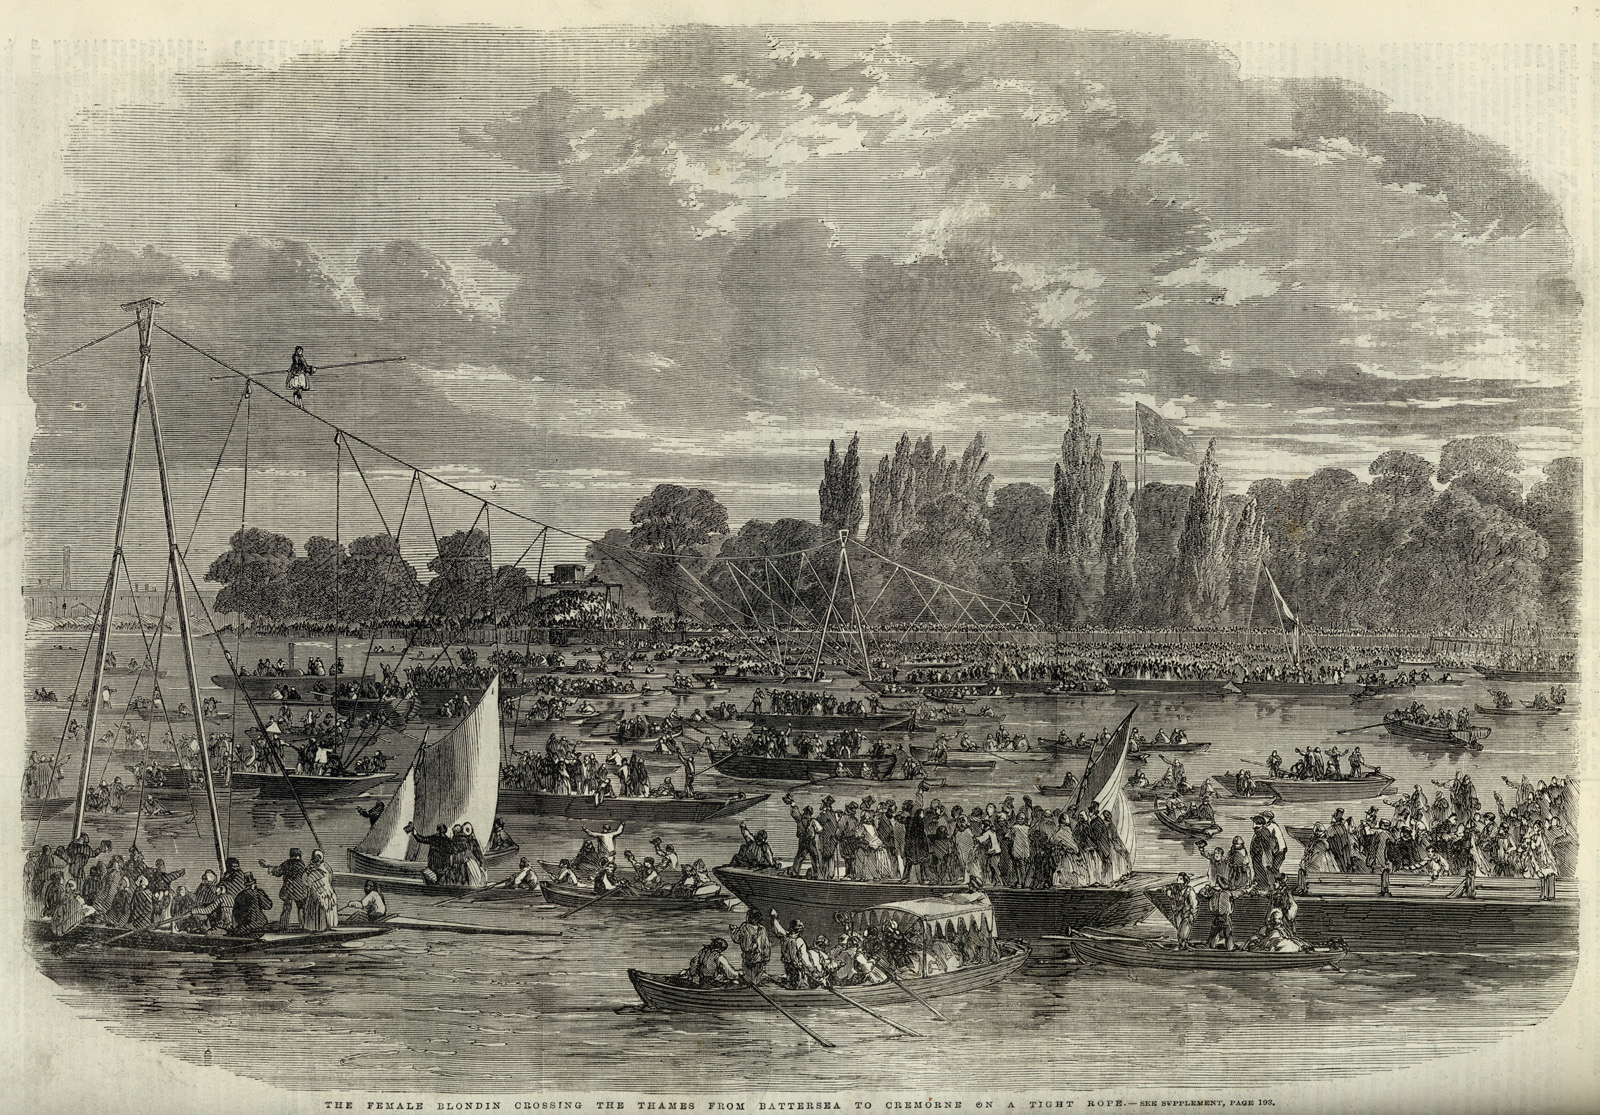 The Female Blondin crossing the Thames from Battersea to Cremorne on a tight rope from: Illustrated London News, August 24, 1861